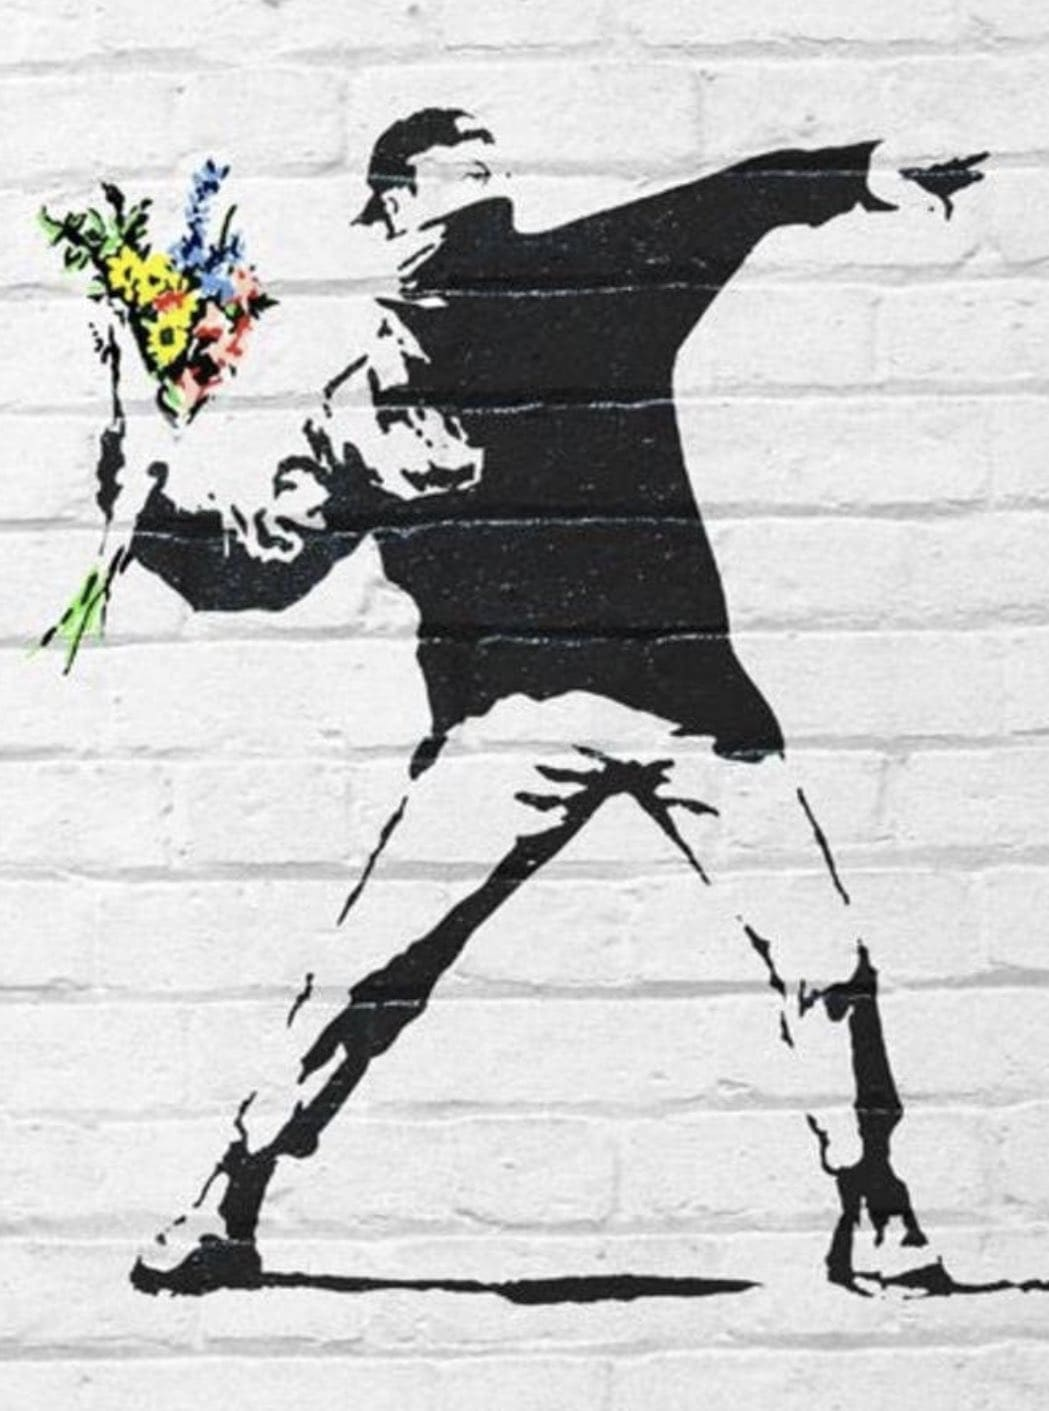 Man throwing flowers instead of bombs